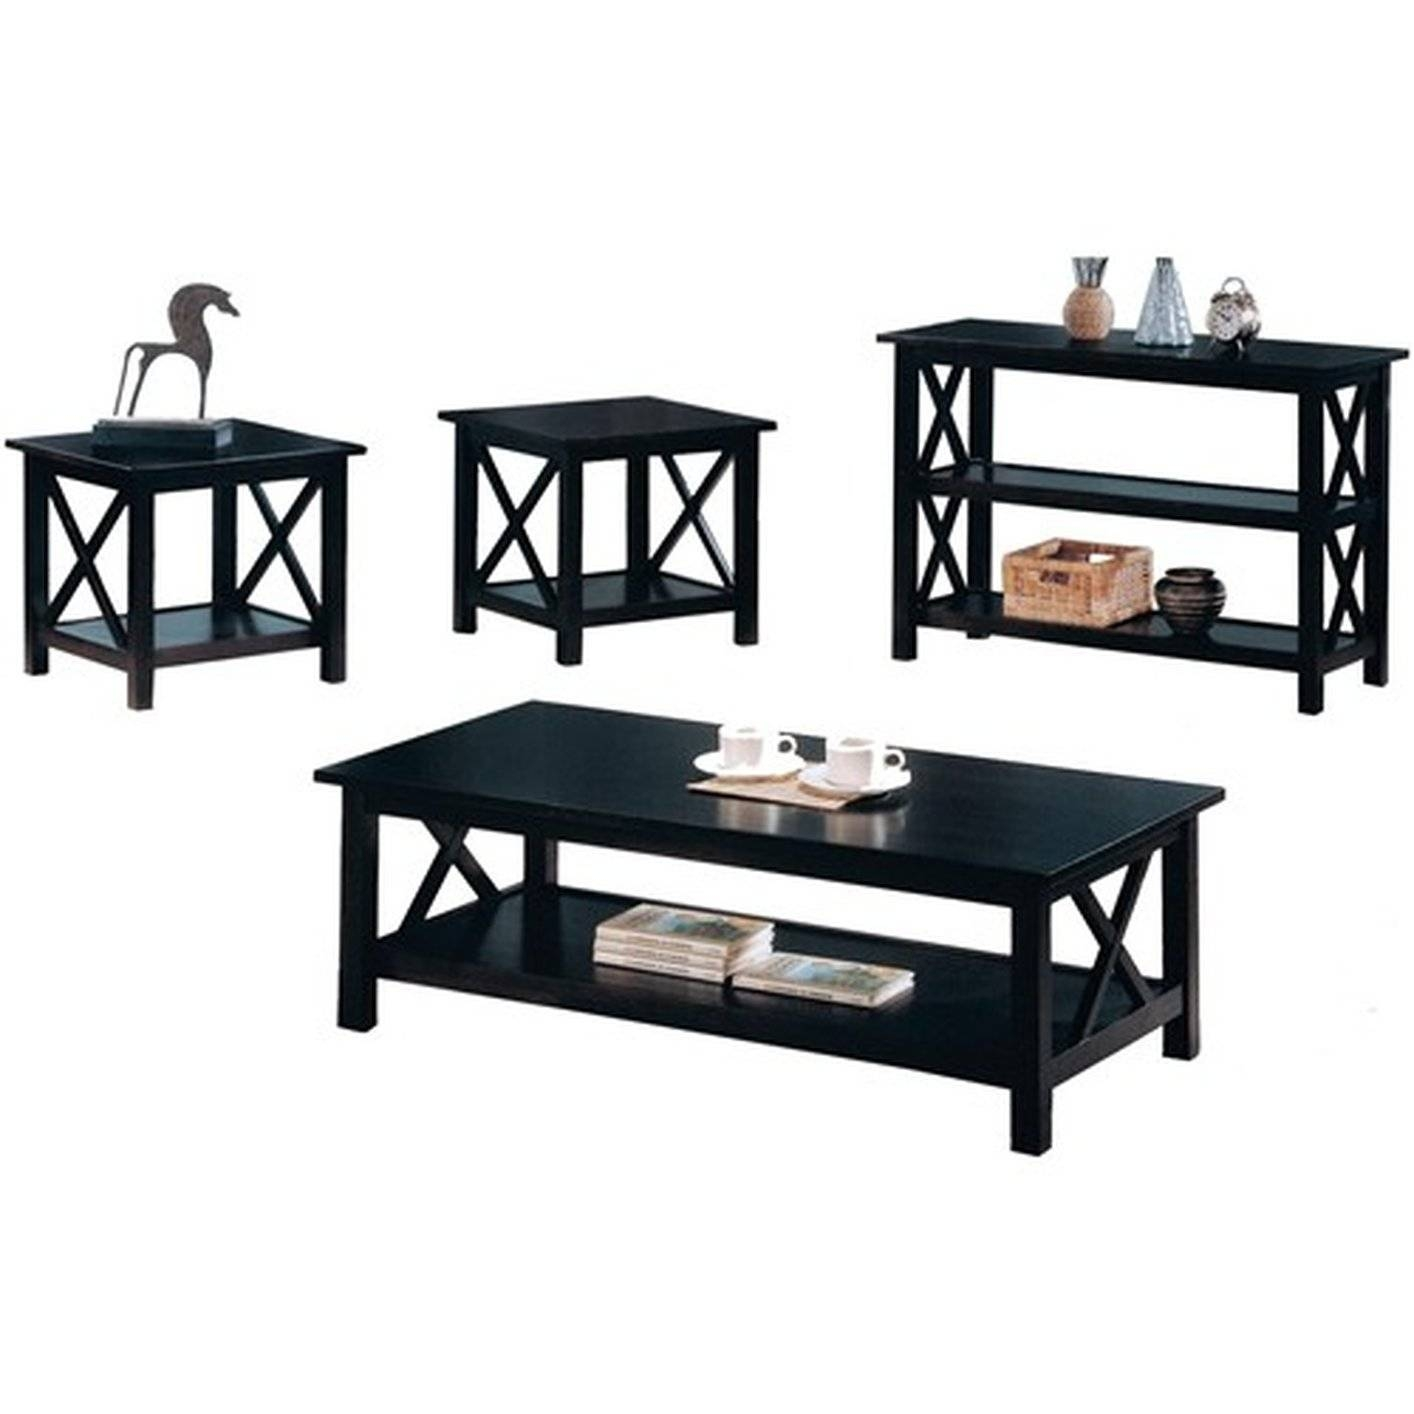 Black Wood Coffee Table Set - Steal-A-Sofa Furniture Outlet Los with regard to Black Wood Coffee Tables (Image 5 of 30)